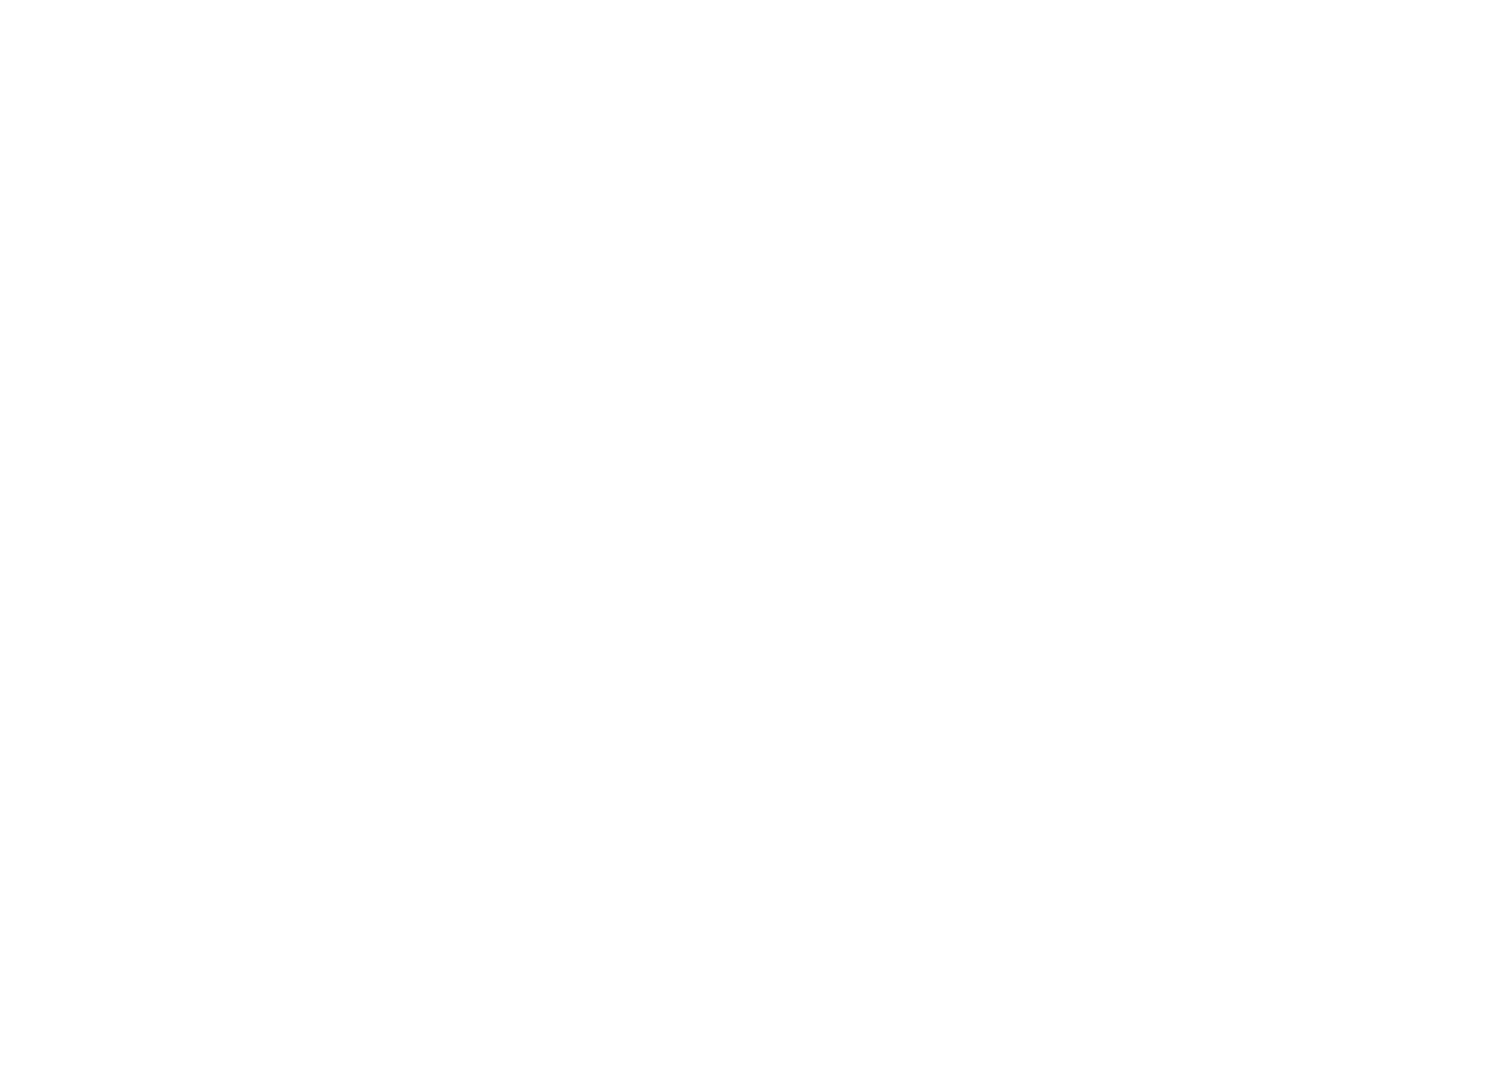 Mindy Webb Photography